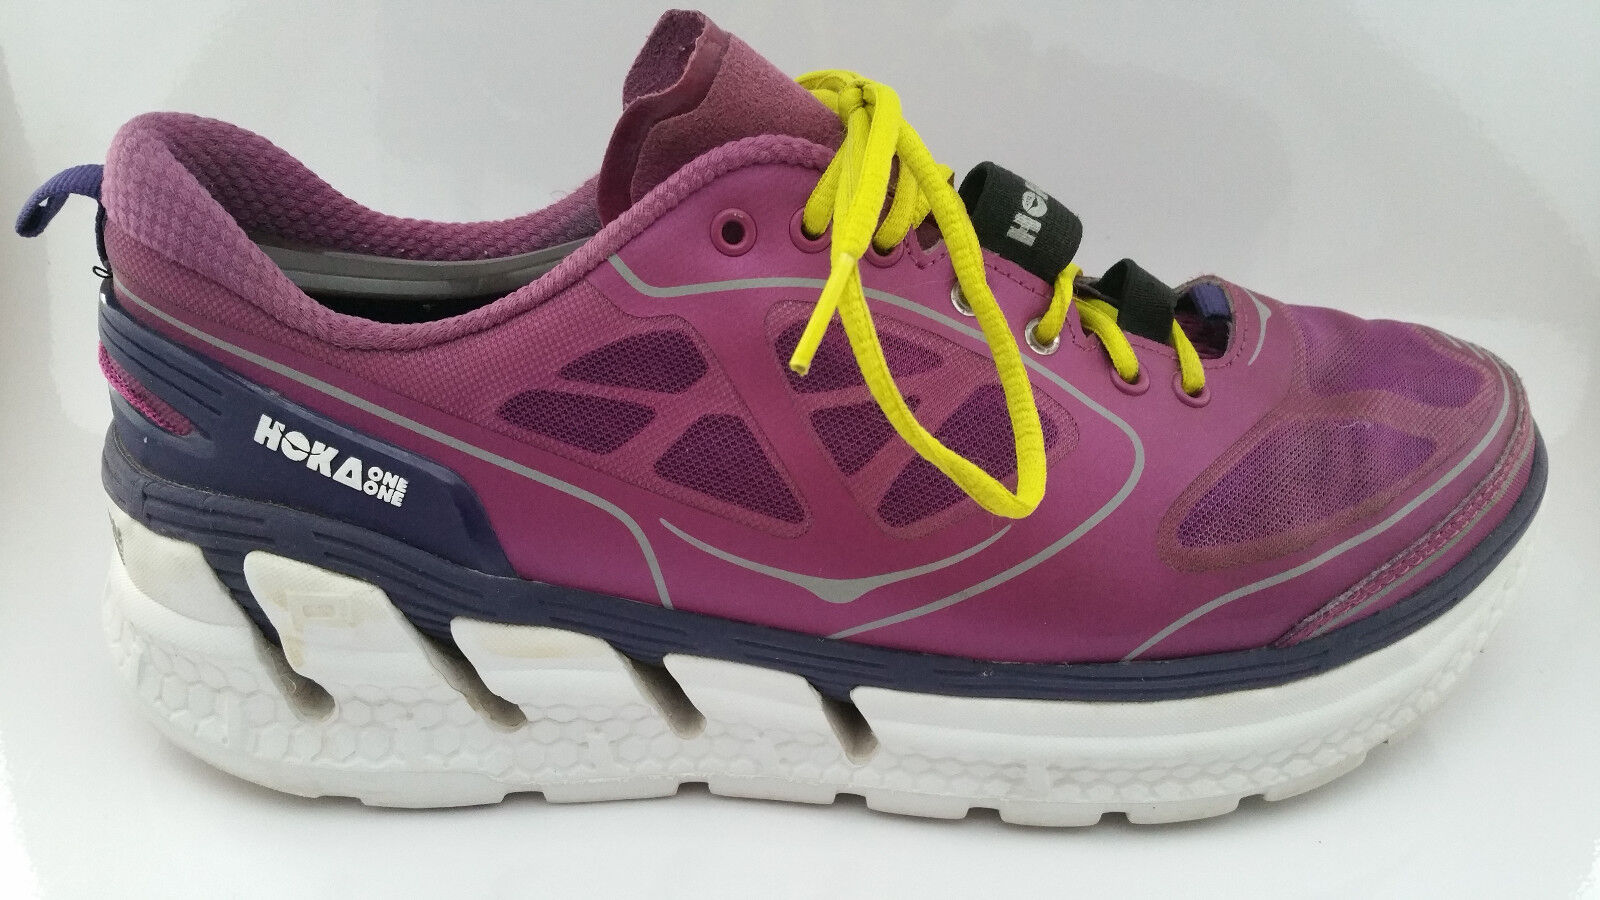 Hoka One One Conquest Damenschuhe 10 Running Athletic Schuhes Clover/Mulberry Purple